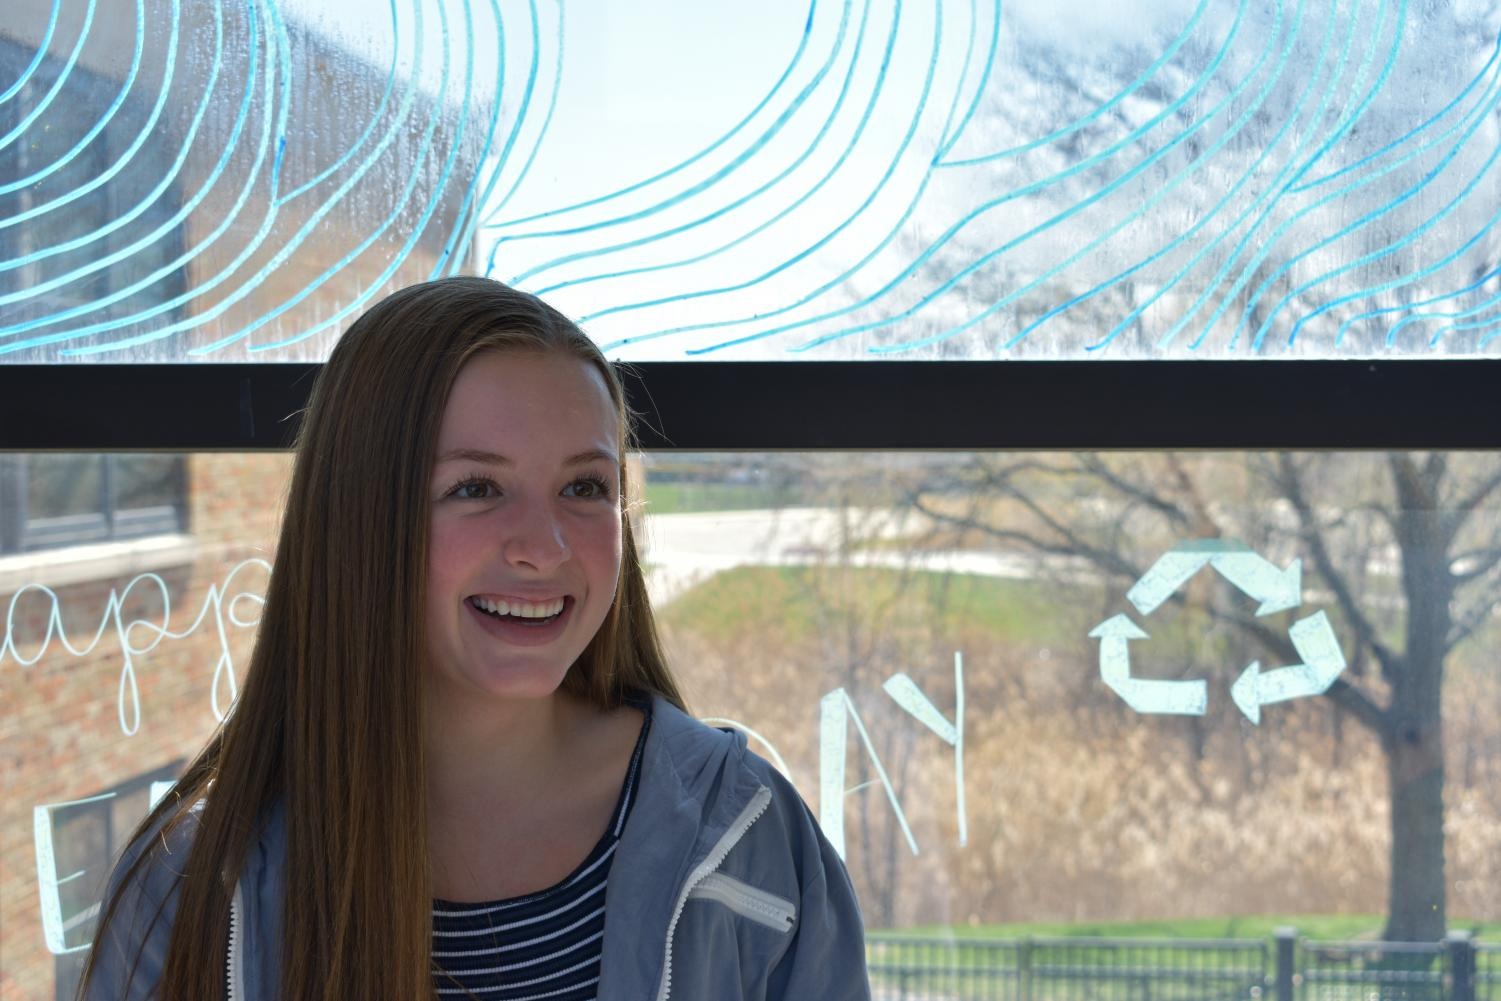 Gabrielle Sullivan, sophomore, is pursuing her dream of a career in fashion by taking the next steps into the professional world through the Nordstrom Ambassador Program.